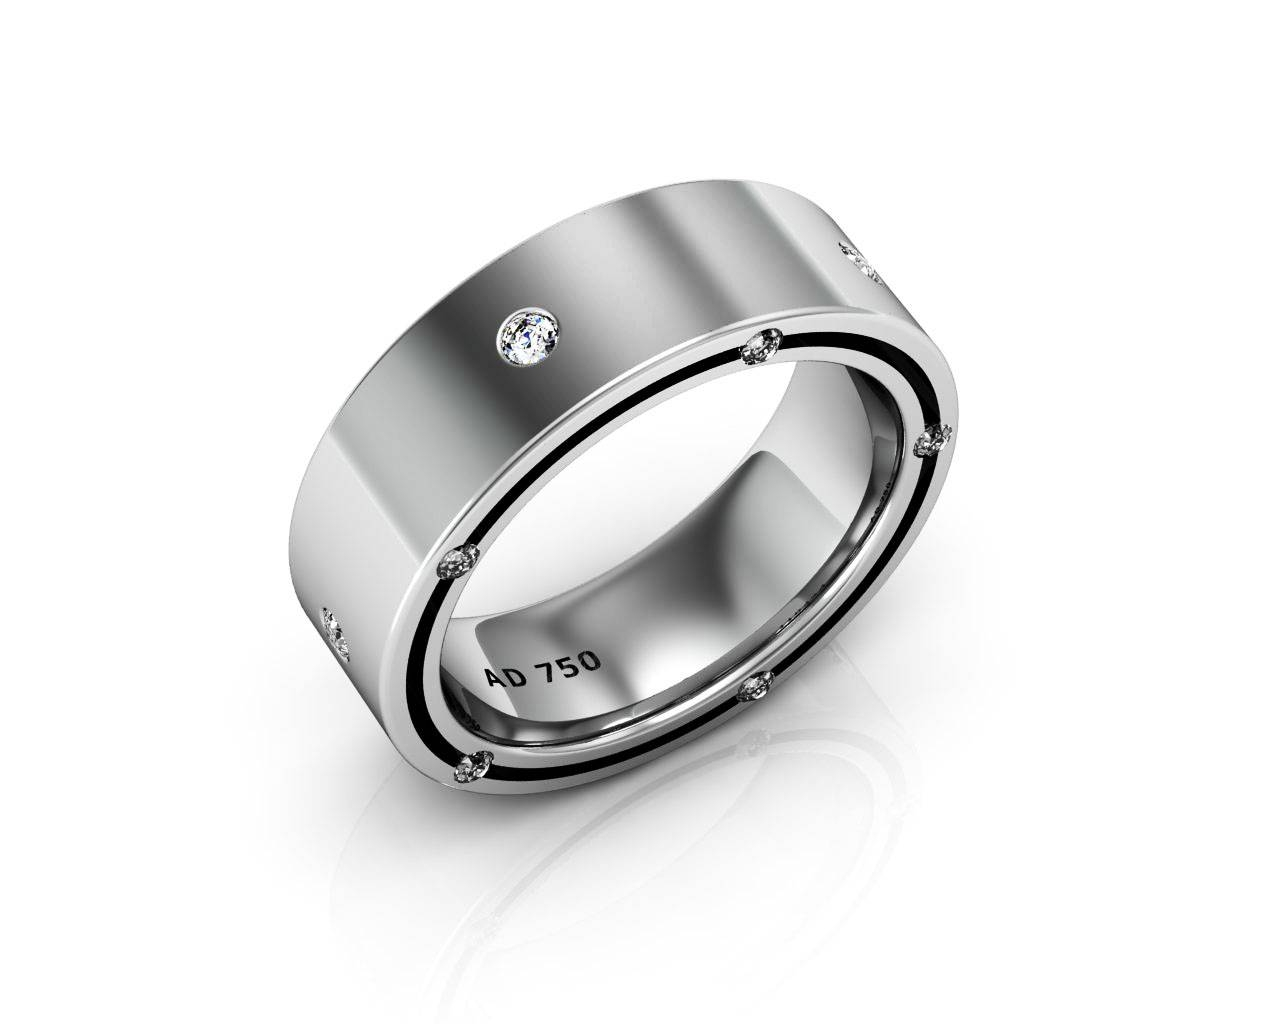 Stone Diamond White Gold Men's Wedding Bands With Mens White Gold Wedding Bands With Diamonds (View 11 of 15)